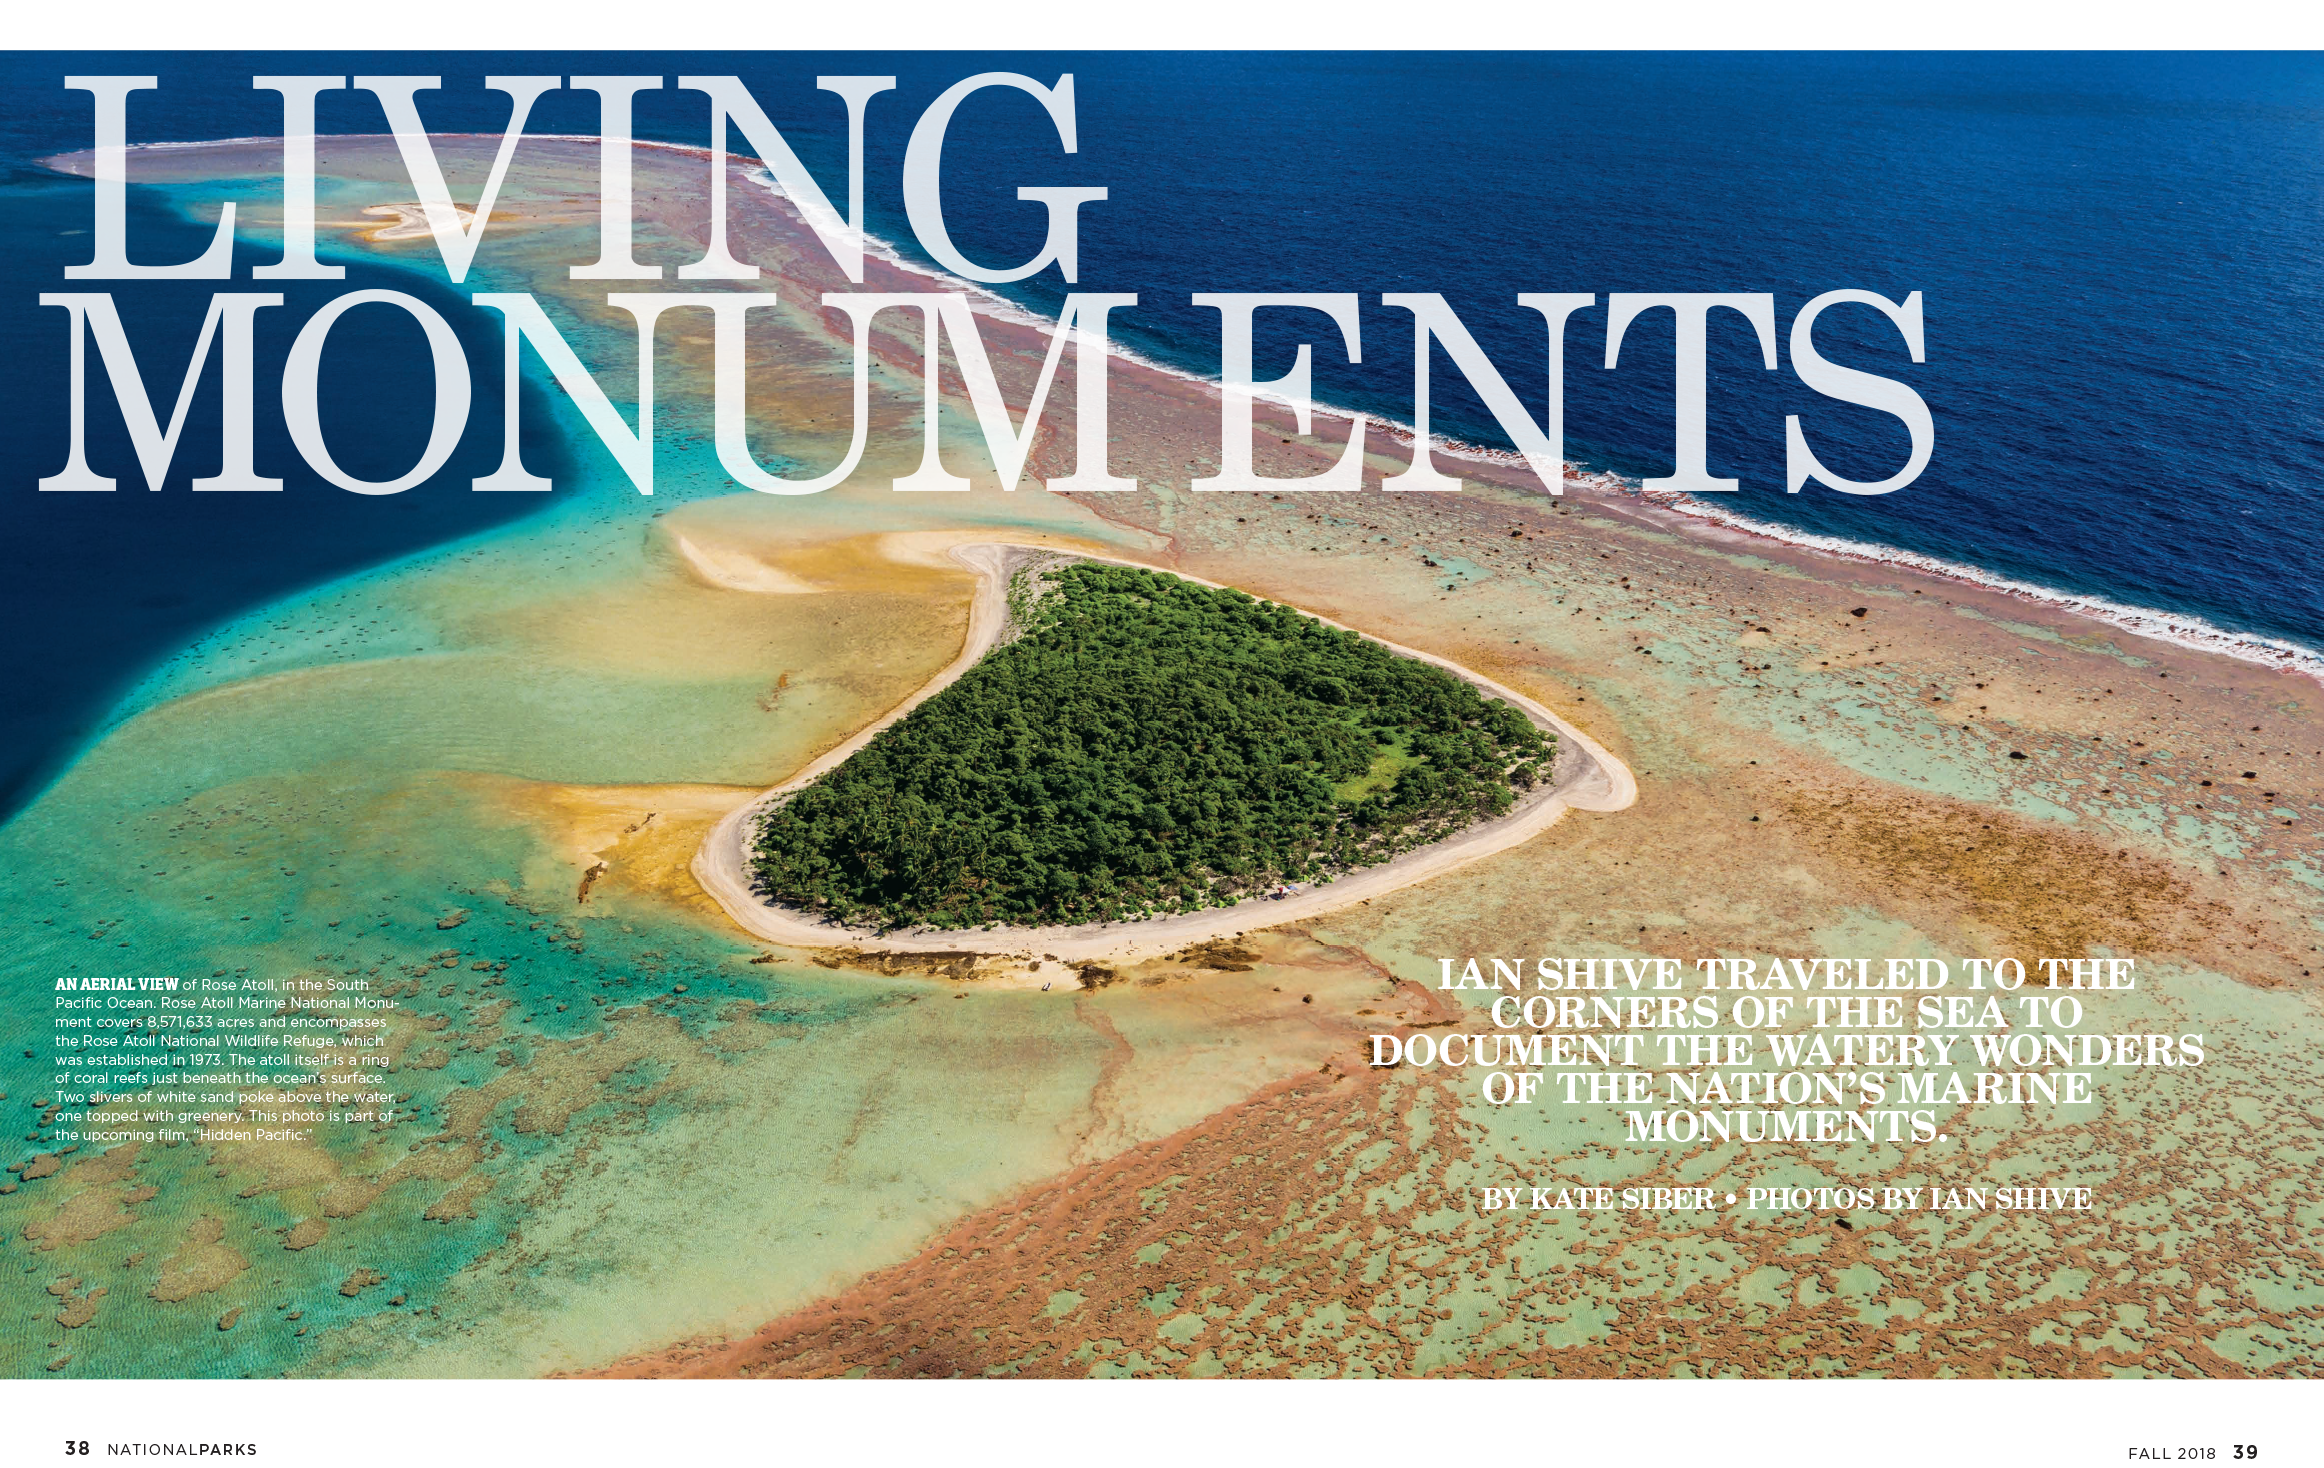 National Parks Conservation Association opening spread in Fall 2018 issue of National Parks magazine.